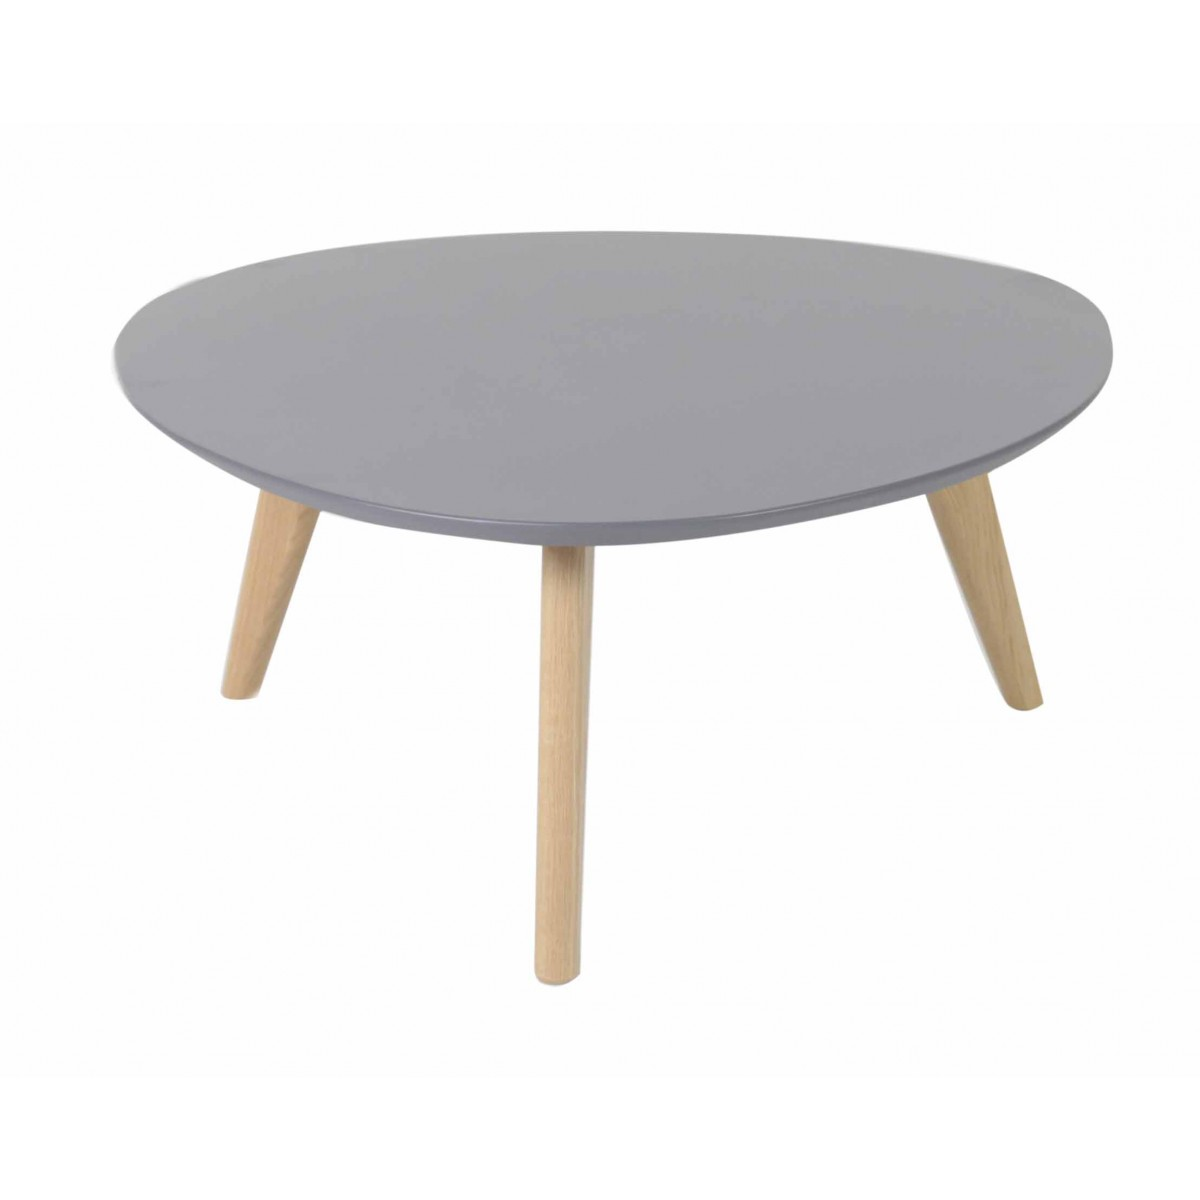 Table basse ch ne et laqu gris d90 cm scandie mooviin for Table basse gris laque